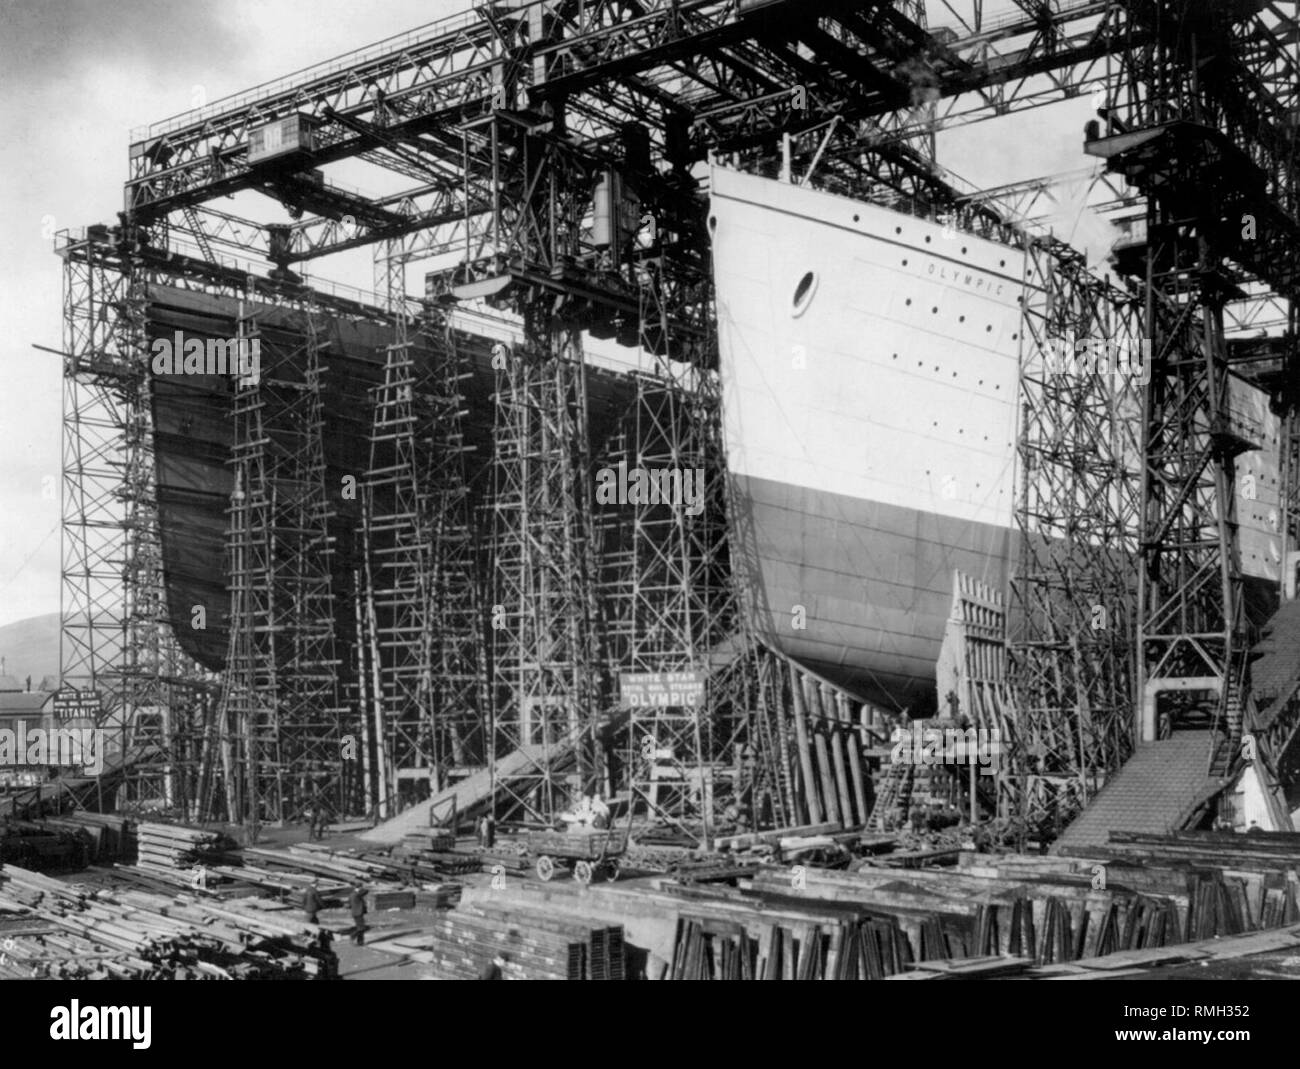 The Titanic and sister ship the Olympic in Harland Wolff Belfast shipyard in 1911 - Stock Image